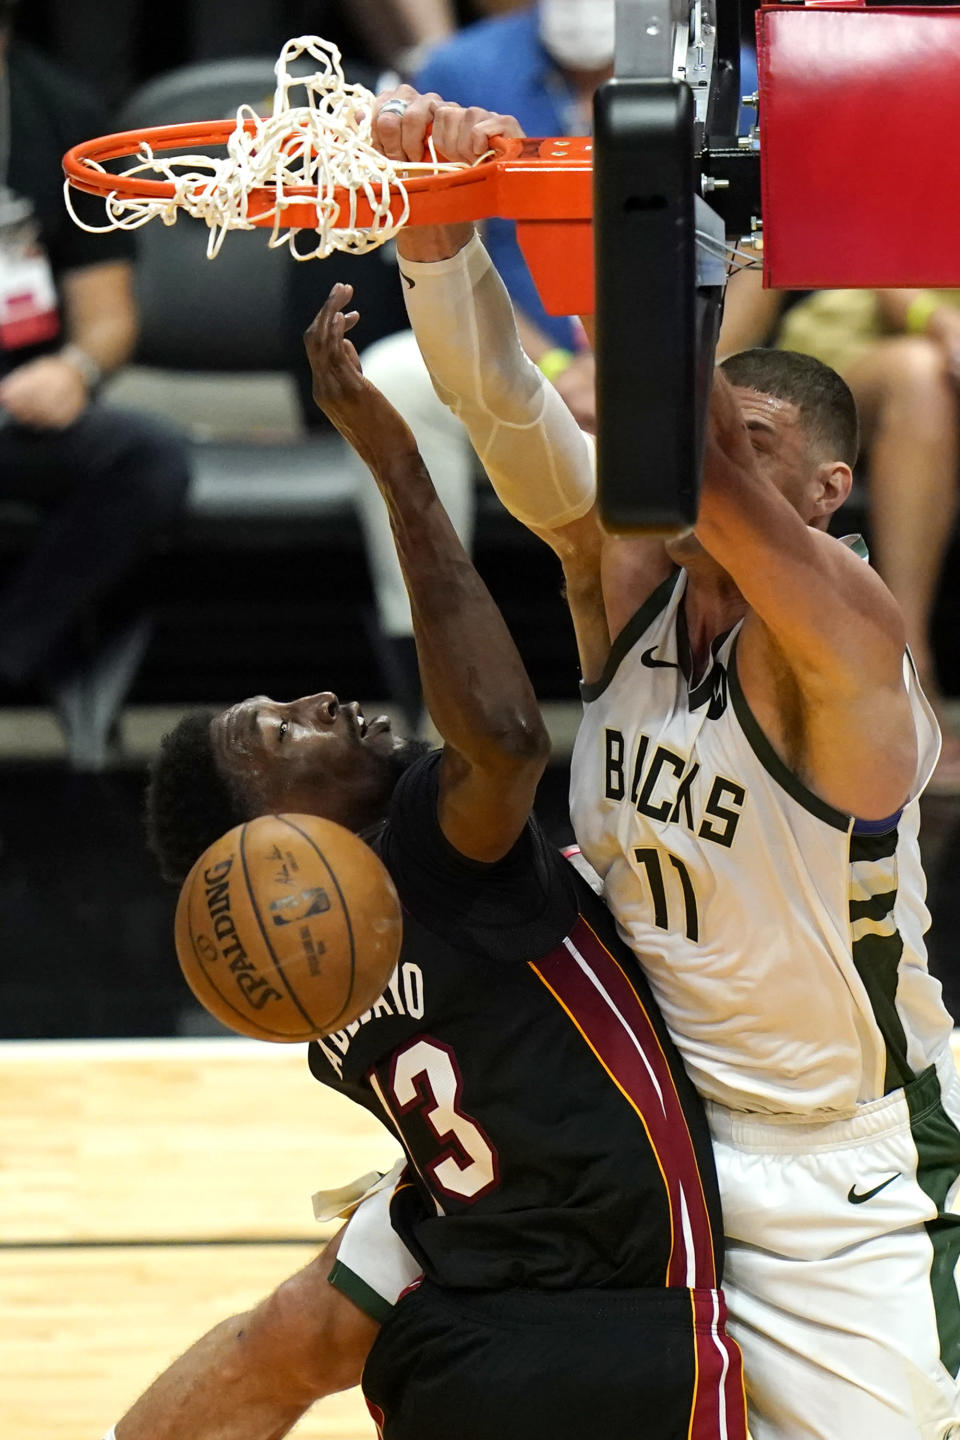 Milwaukee Bucks center Brook Lopez (11) dunks over Miami Heat center Bam Adebayo (13) during the second half of Game 4 of an NBA basketball first-round playoff series, Saturday, May 29, 2021, in Miami. The Bucks won 120-103. (AP Photo/Lynne Sladky)